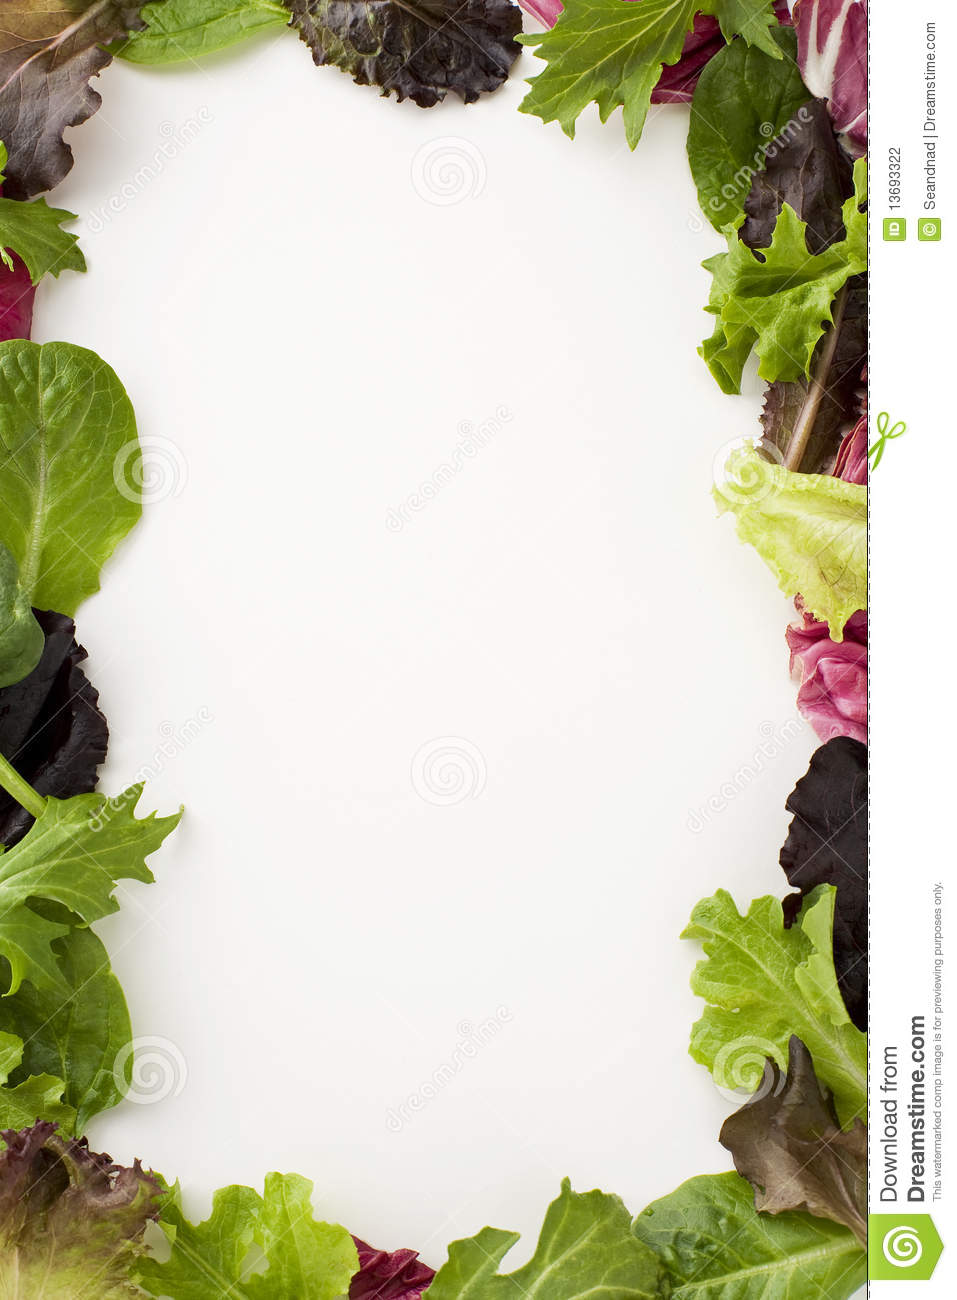 Salad Border Stock Photography Image 13693322